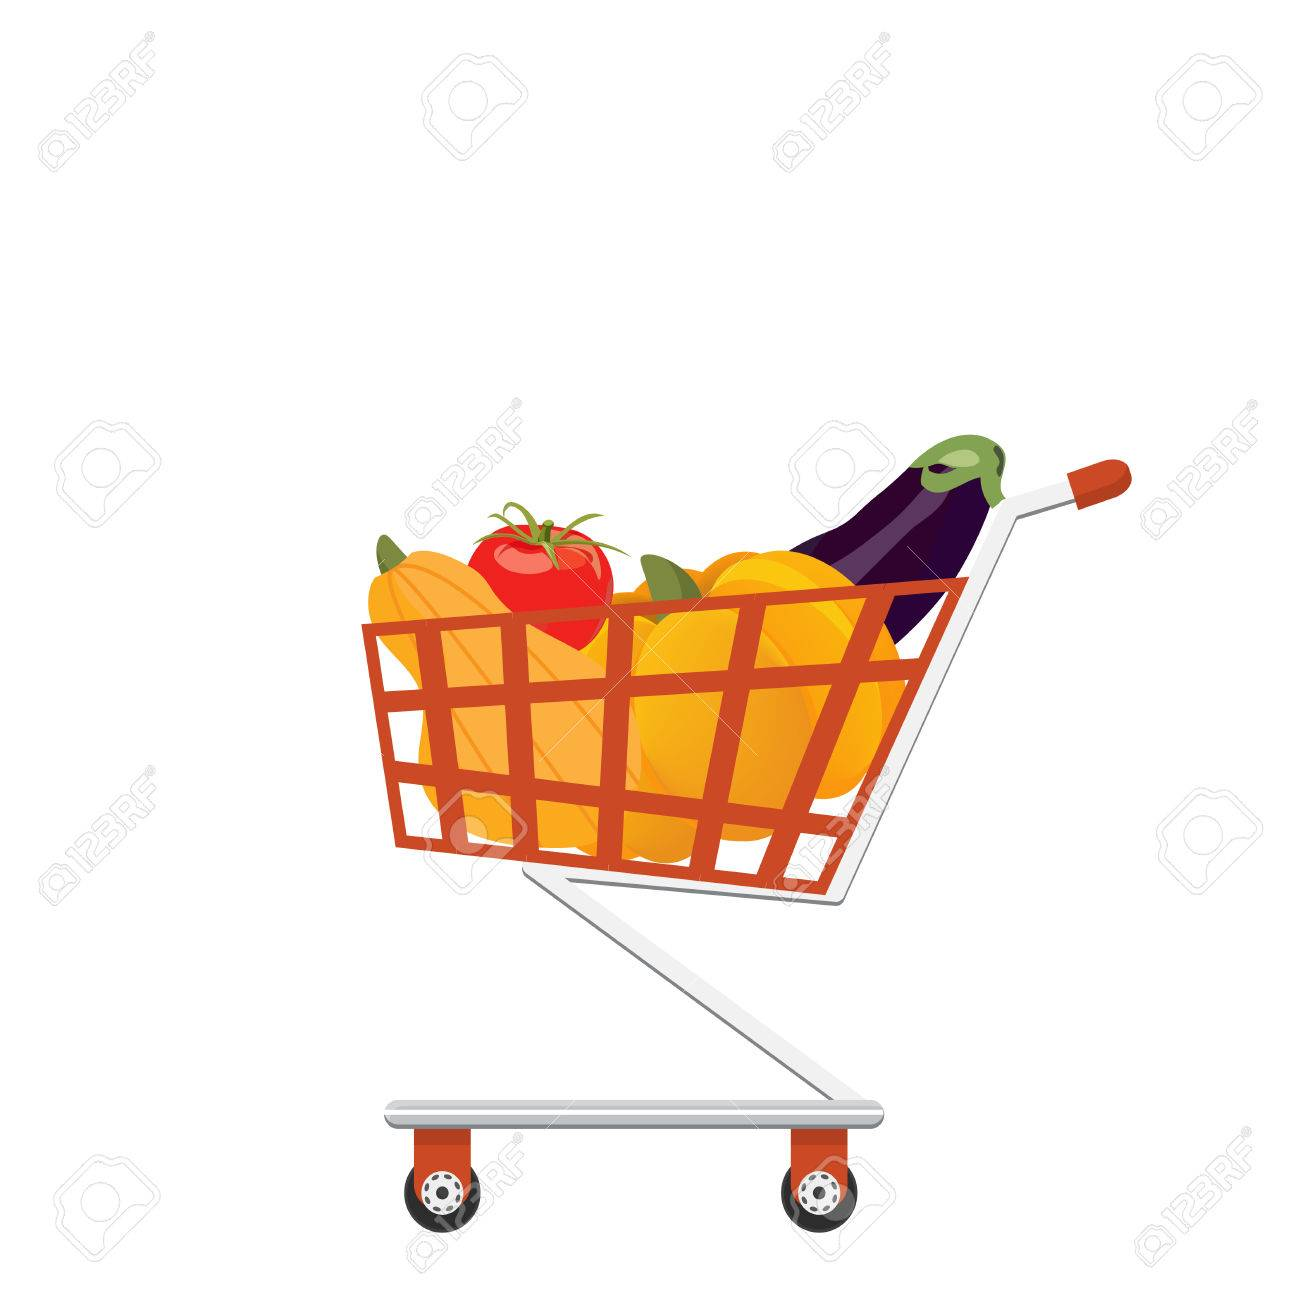 Supermarket Full Shopping Trolley Cart With Fresh Grocery Products Stock Photo Picture And Royalty Free Image Image 79906739